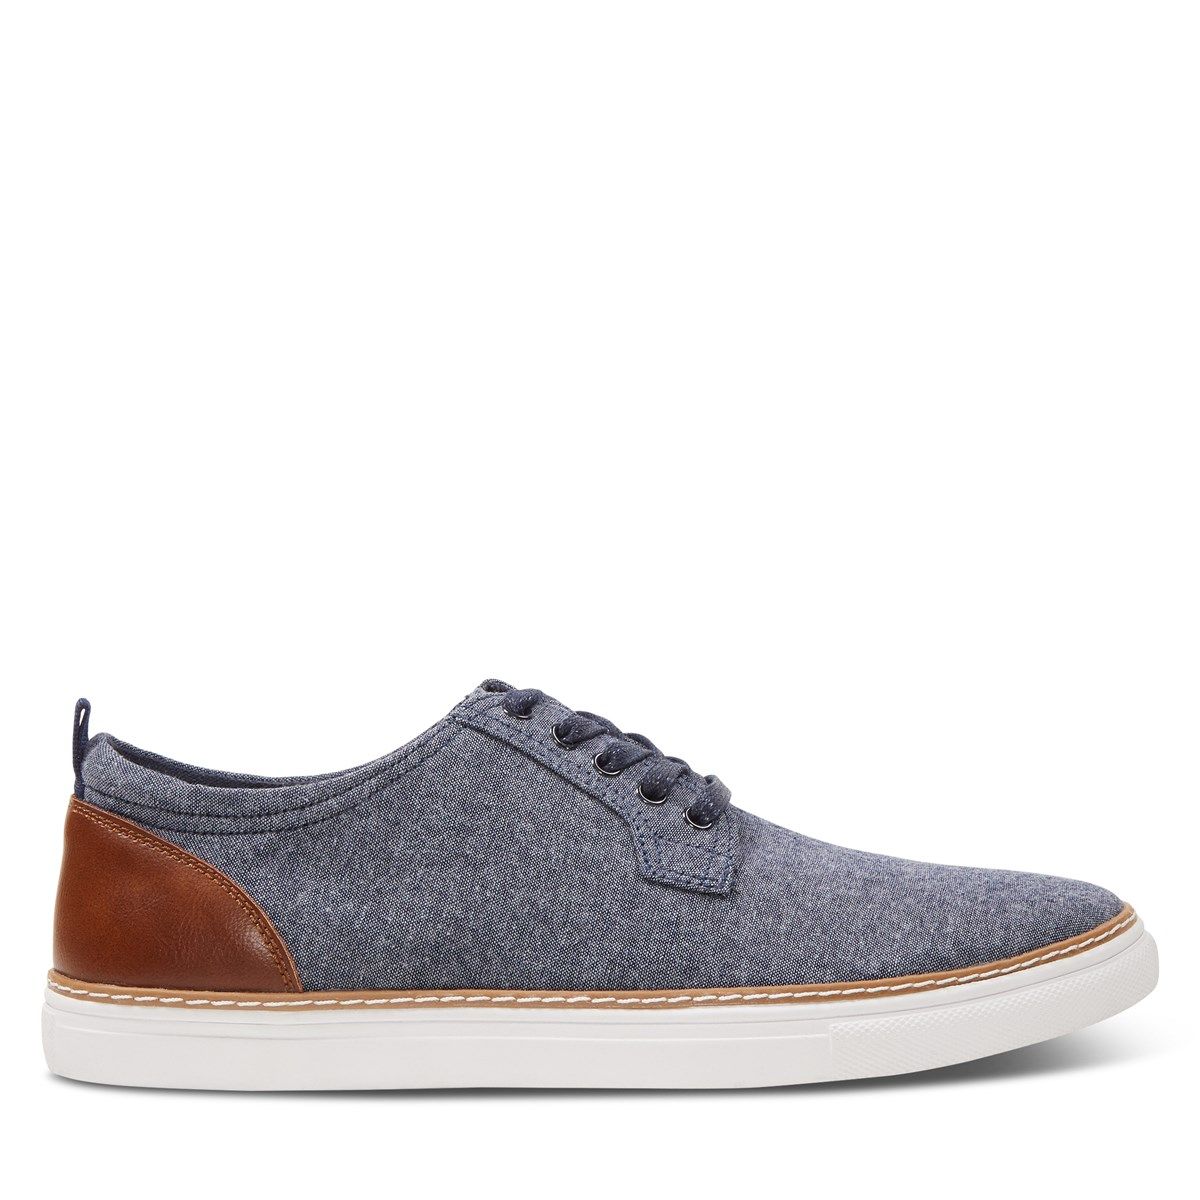 Men's Rocco Shoes in Blue Chambray